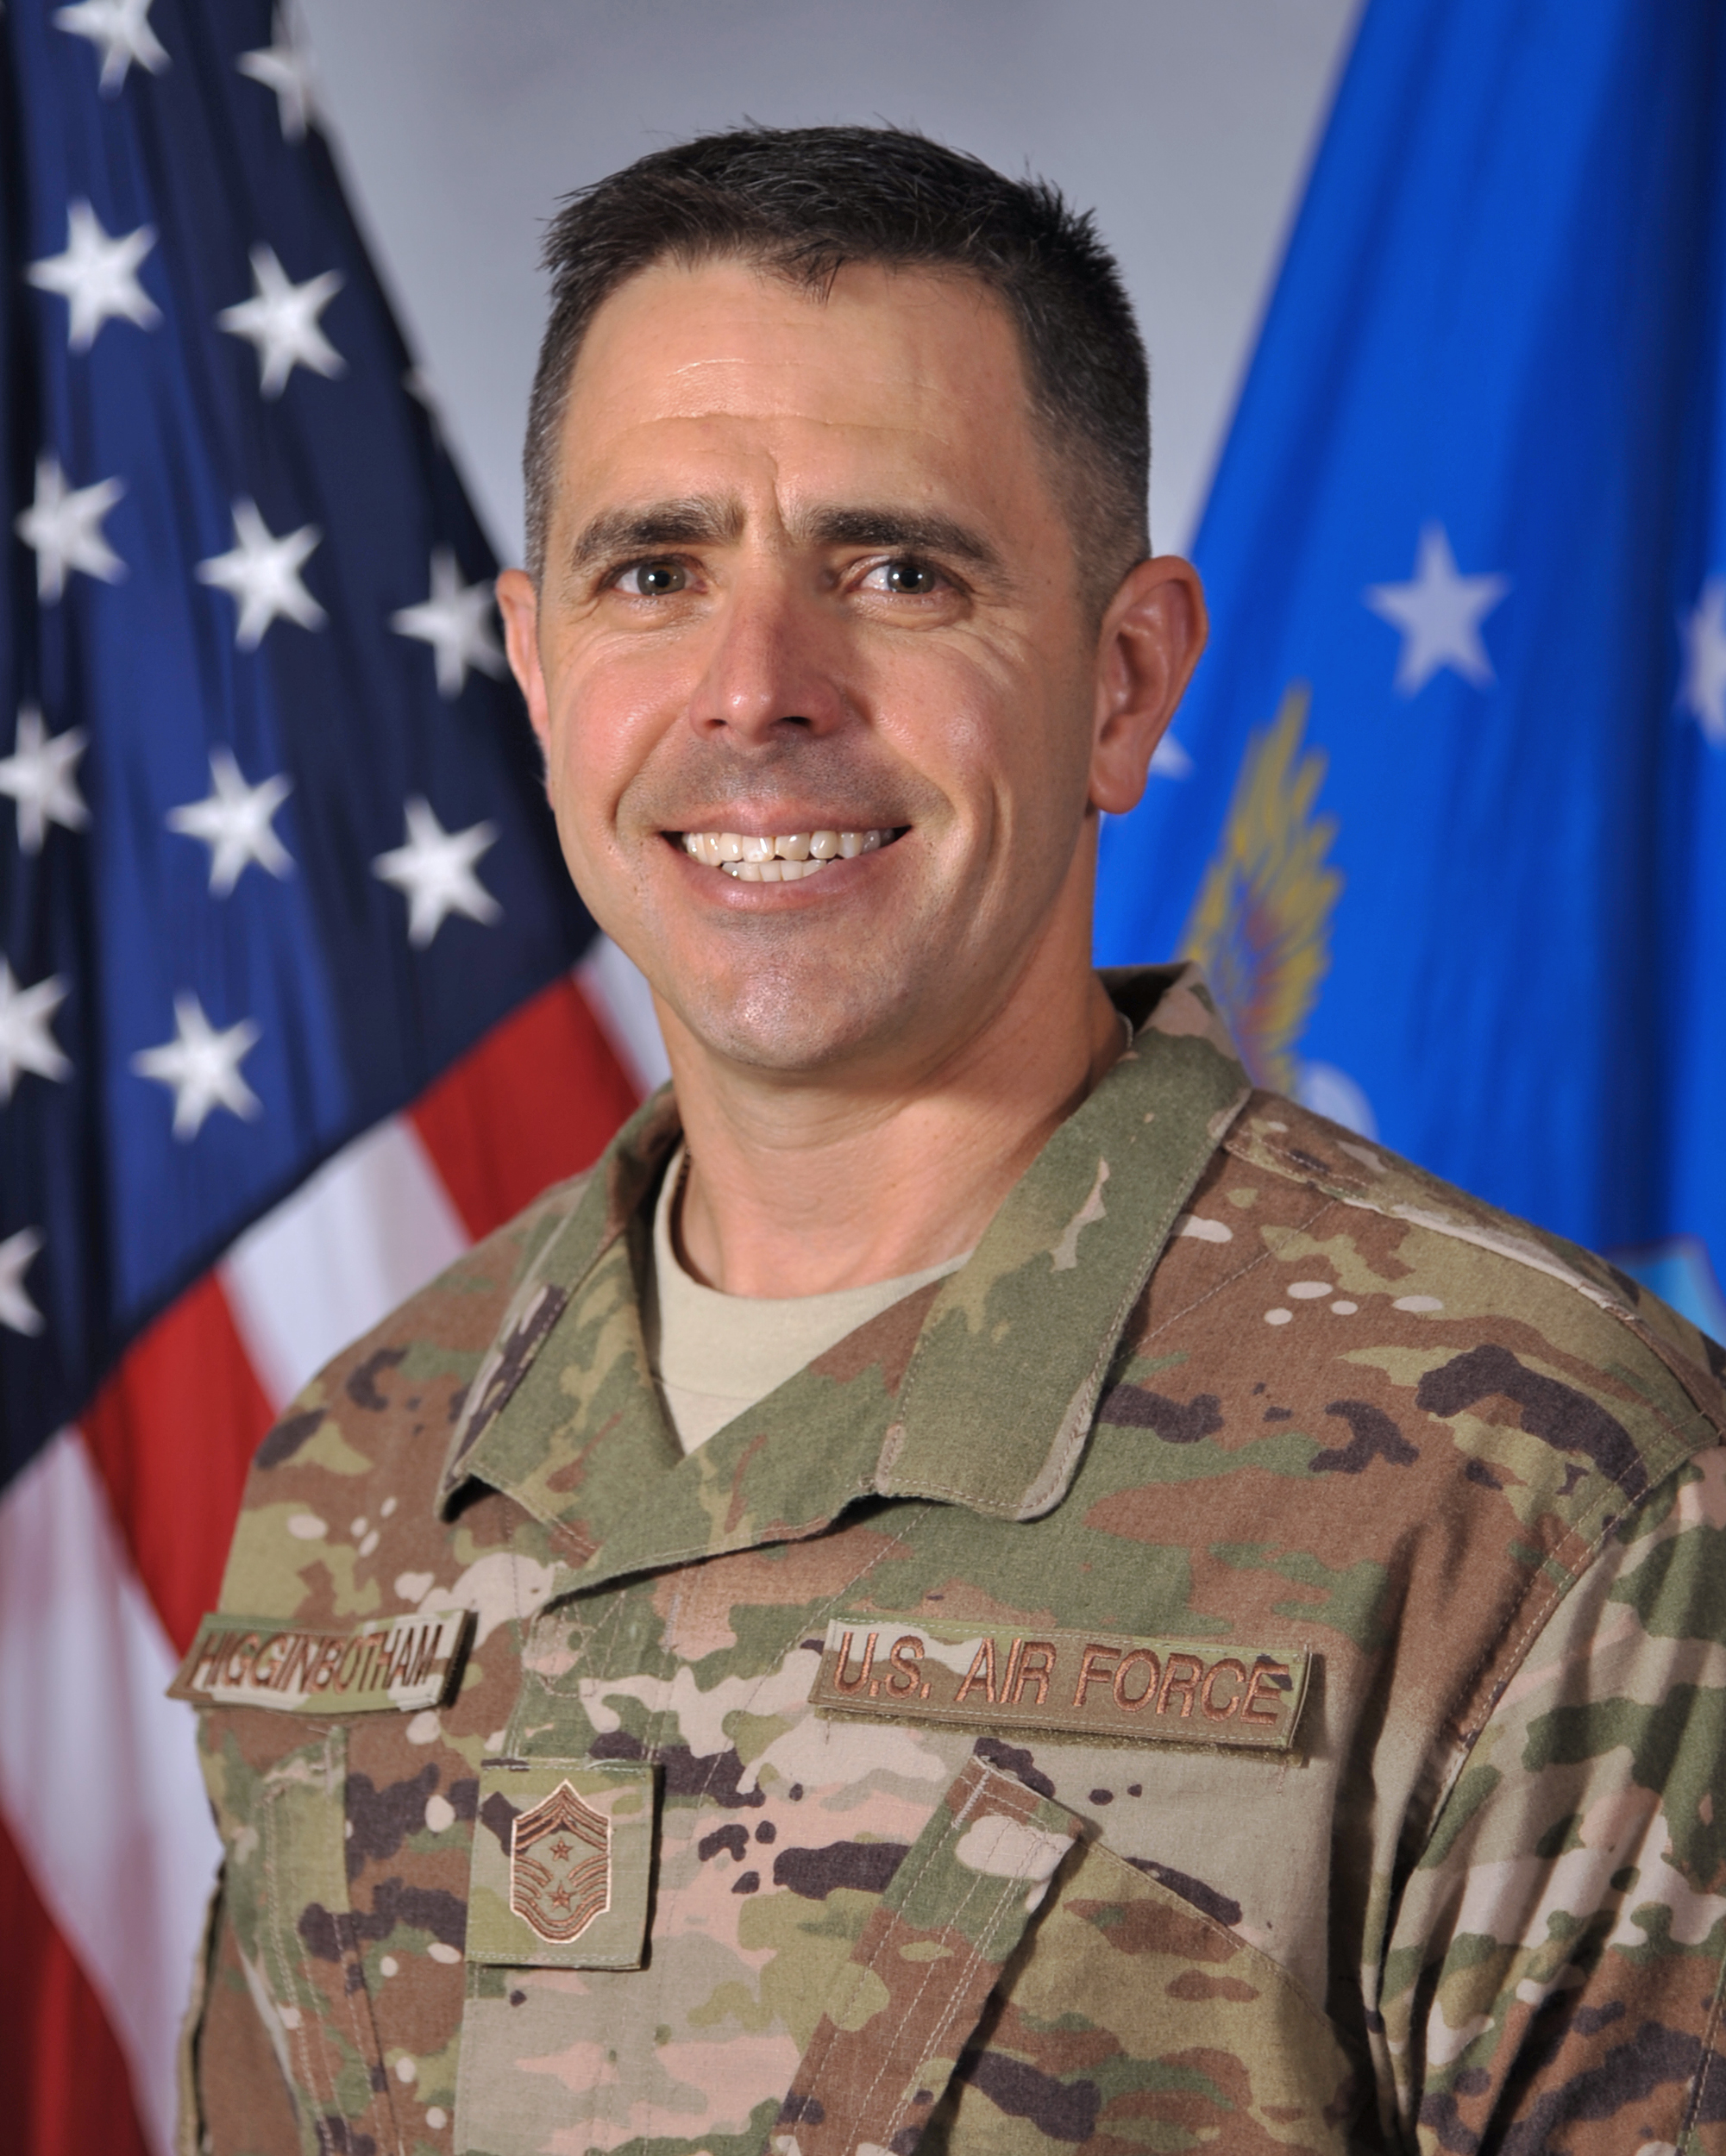 CJTF-HOA Senior Enlisted Leader Bio Photo